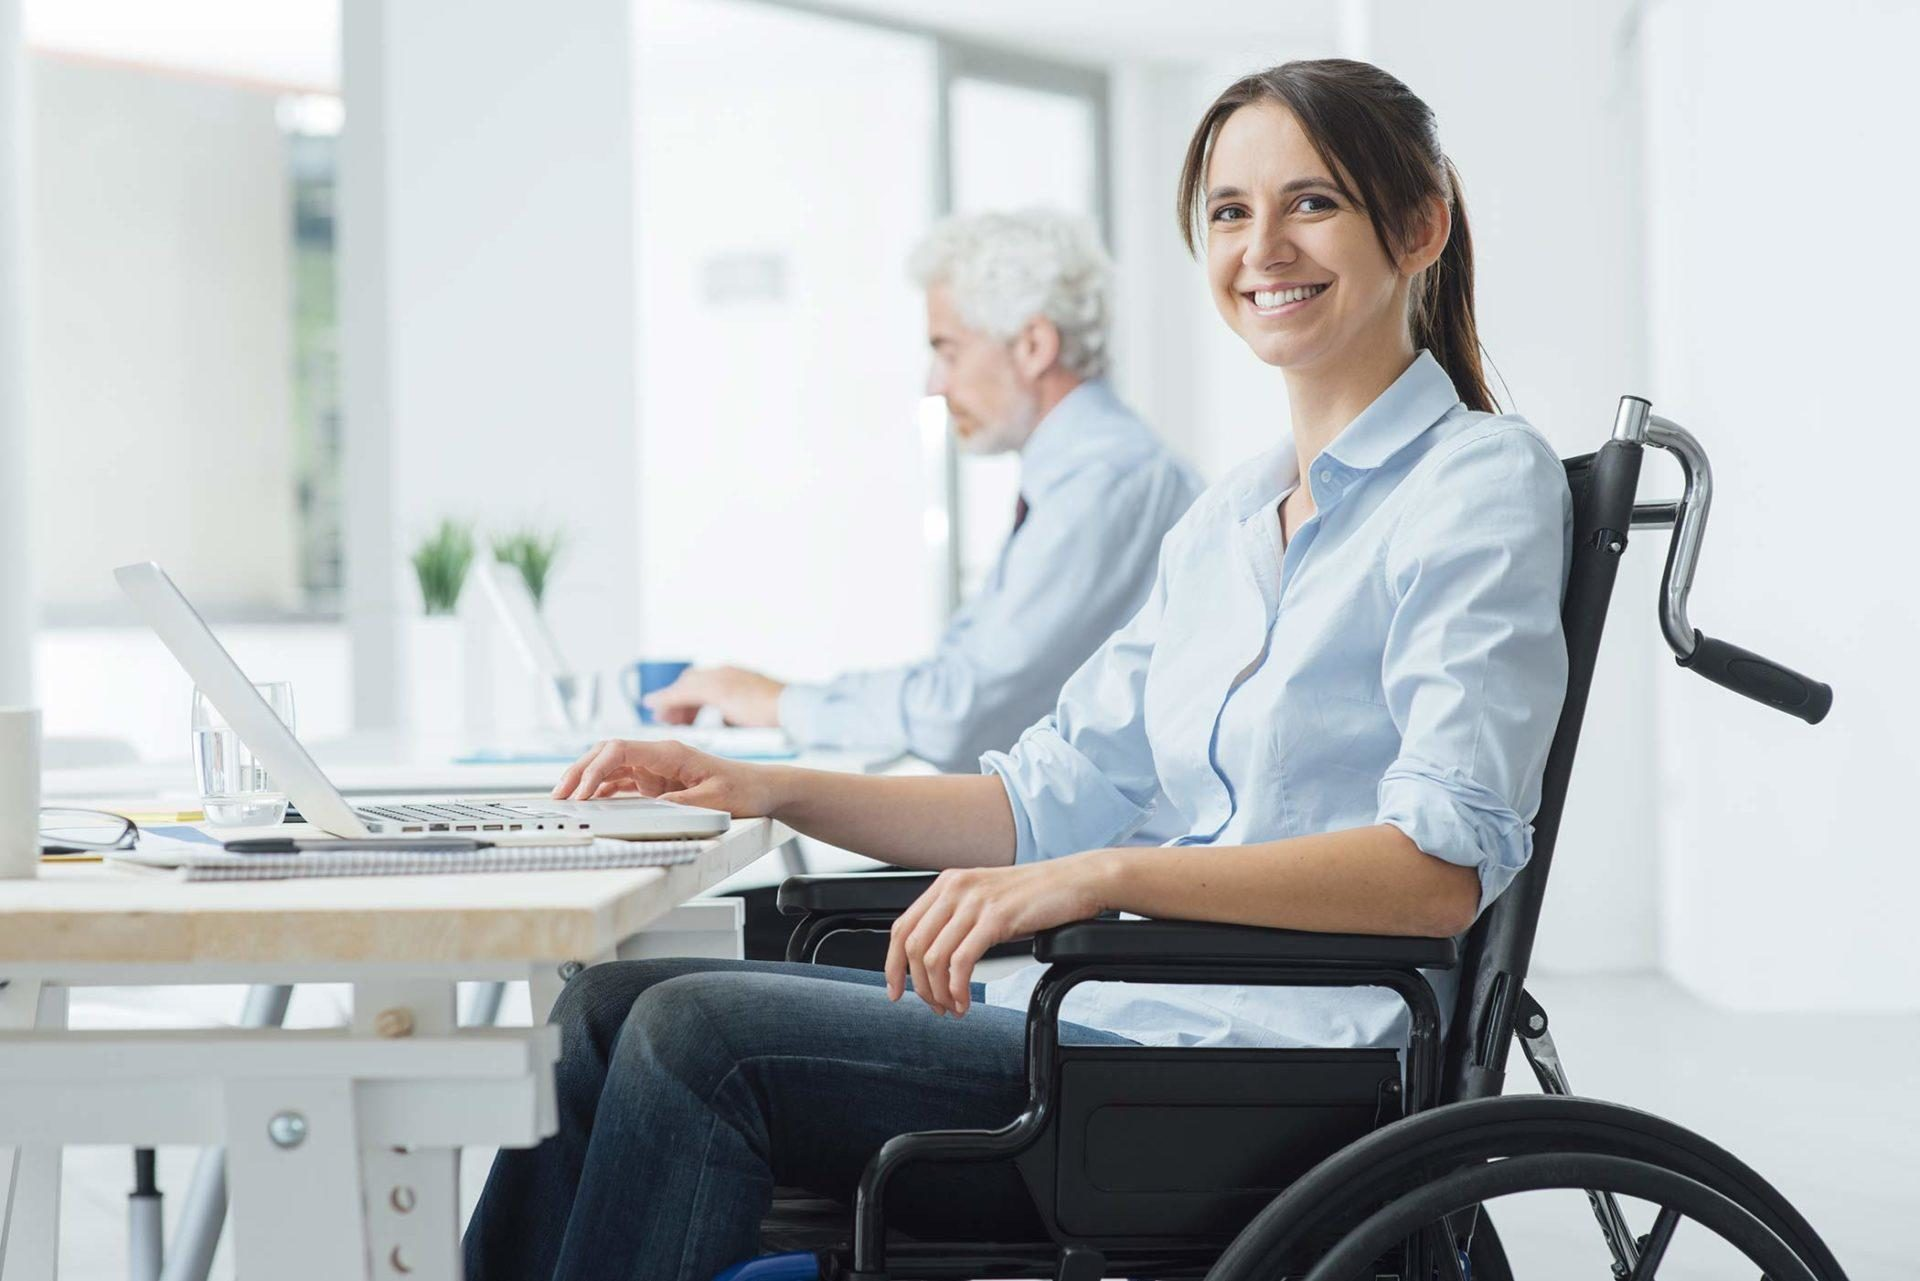 Disability Equipment & Transport